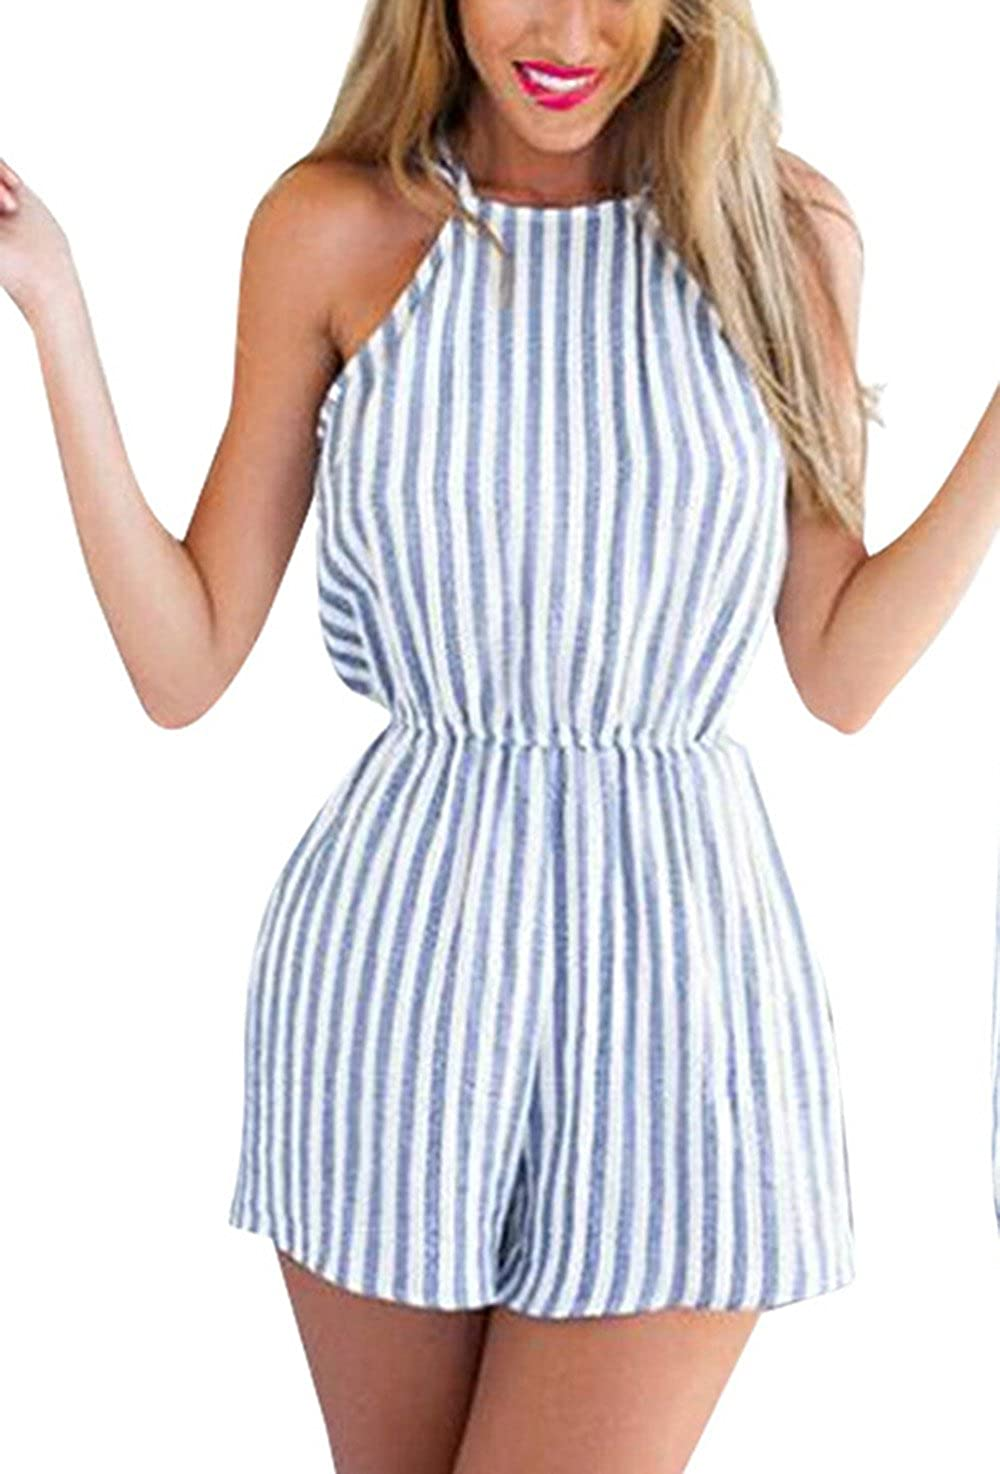 7c143a9eadb1 Amazon.com  Jumpsuit for Women Sleeveless Slim Straight Vertical Stripe  Wide Truffle Back Siamese Pants Light Blue  Clothing